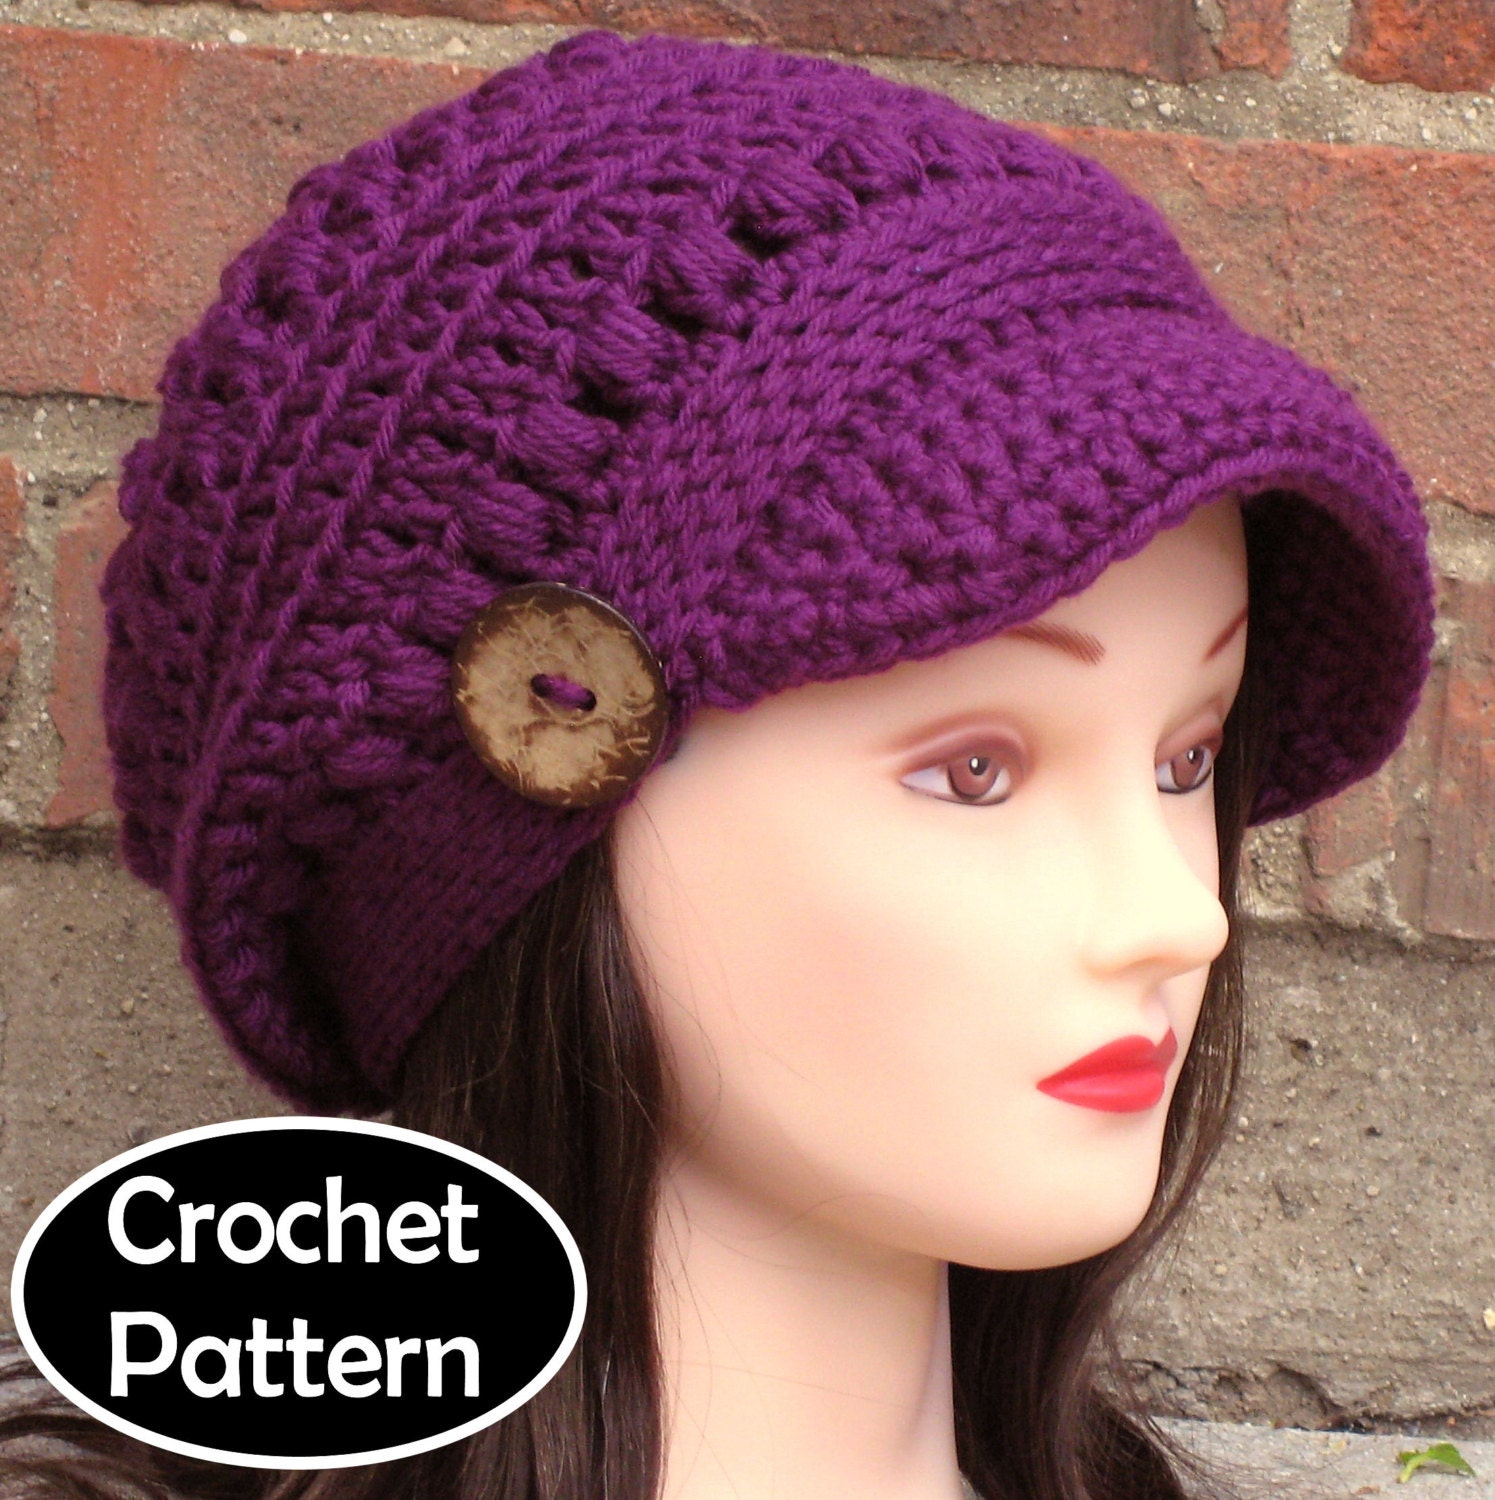 Free Crochet Hat Patterns To Download : CROCHET HAT PATTERN Instant Download Pdf Brooklyn Newsboy